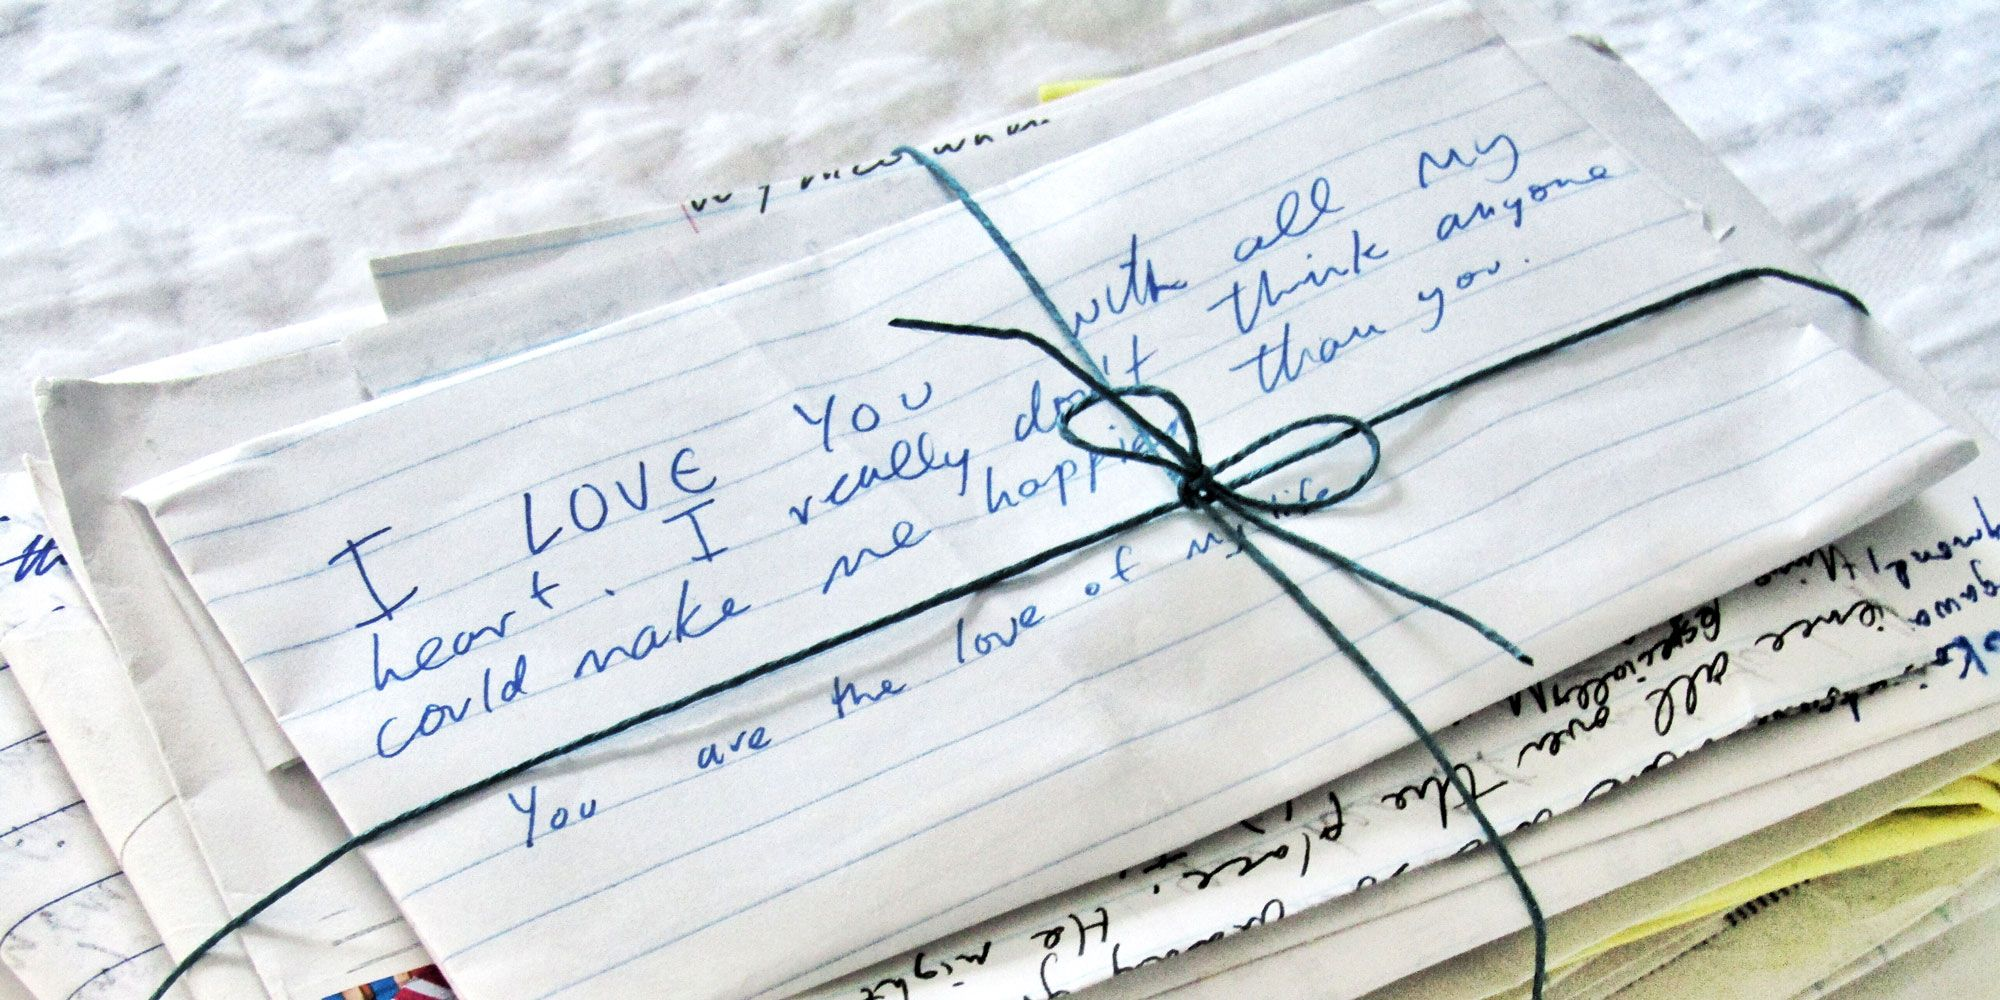 My Boyfriend Saved Love Letters From His Ex - Ask Logan